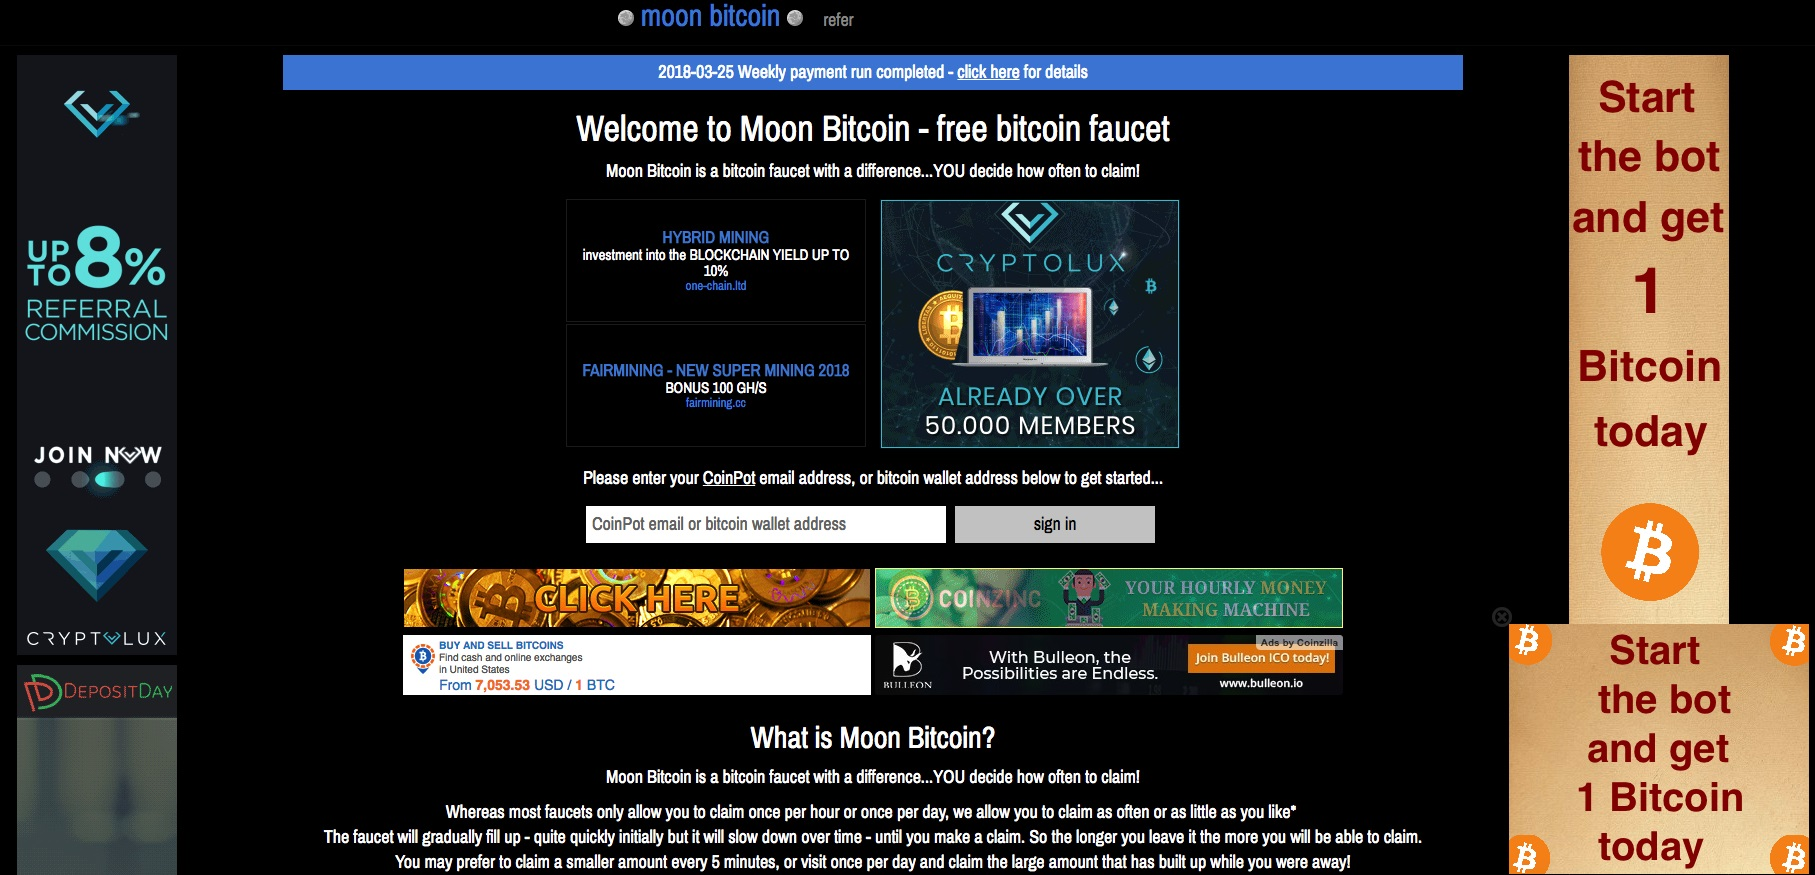 Moon Bitcoin Review – Legit Bitcoin Faucet as of 2018? – Scam Bitcoin